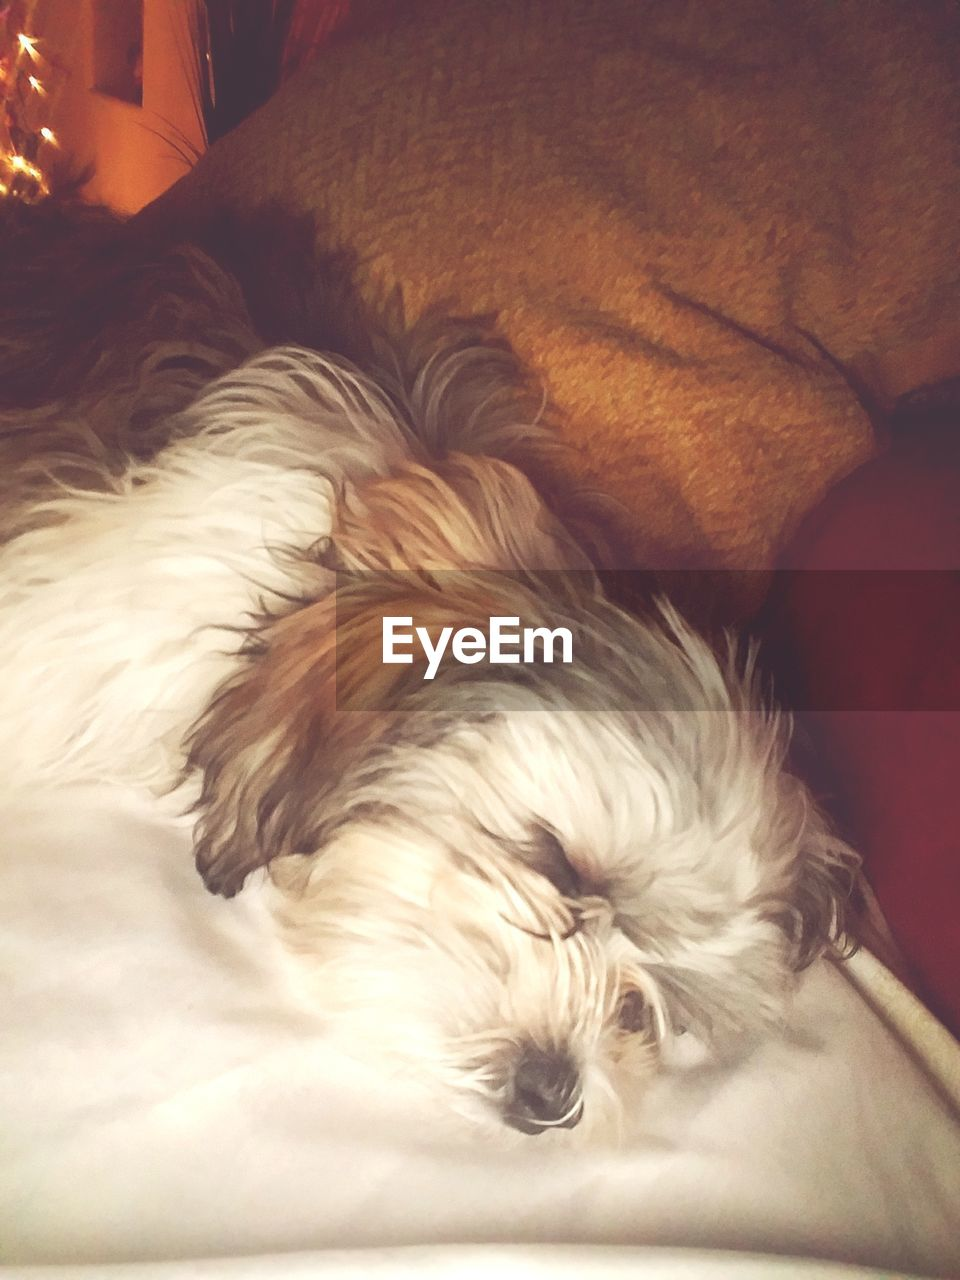 pets, dog, domestic animals, one animal, animal themes, mammal, sleeping, animal hair, relaxation, lying down, indoors, resting, no people, bed, close-up, day